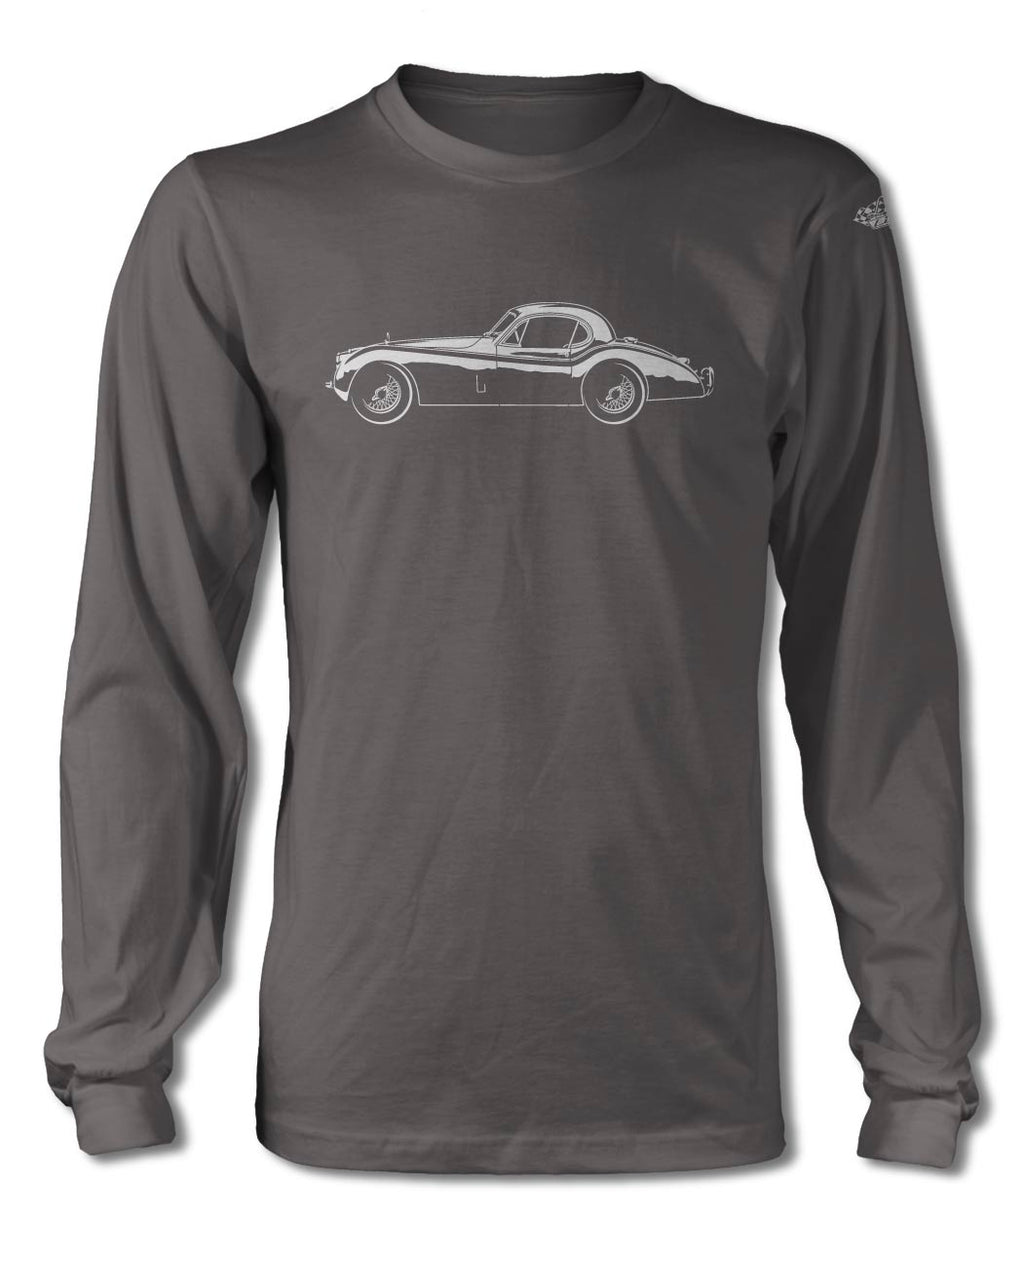 Jaguar XK 120 Coupe T-Shirt - Long Sleeves - Side View